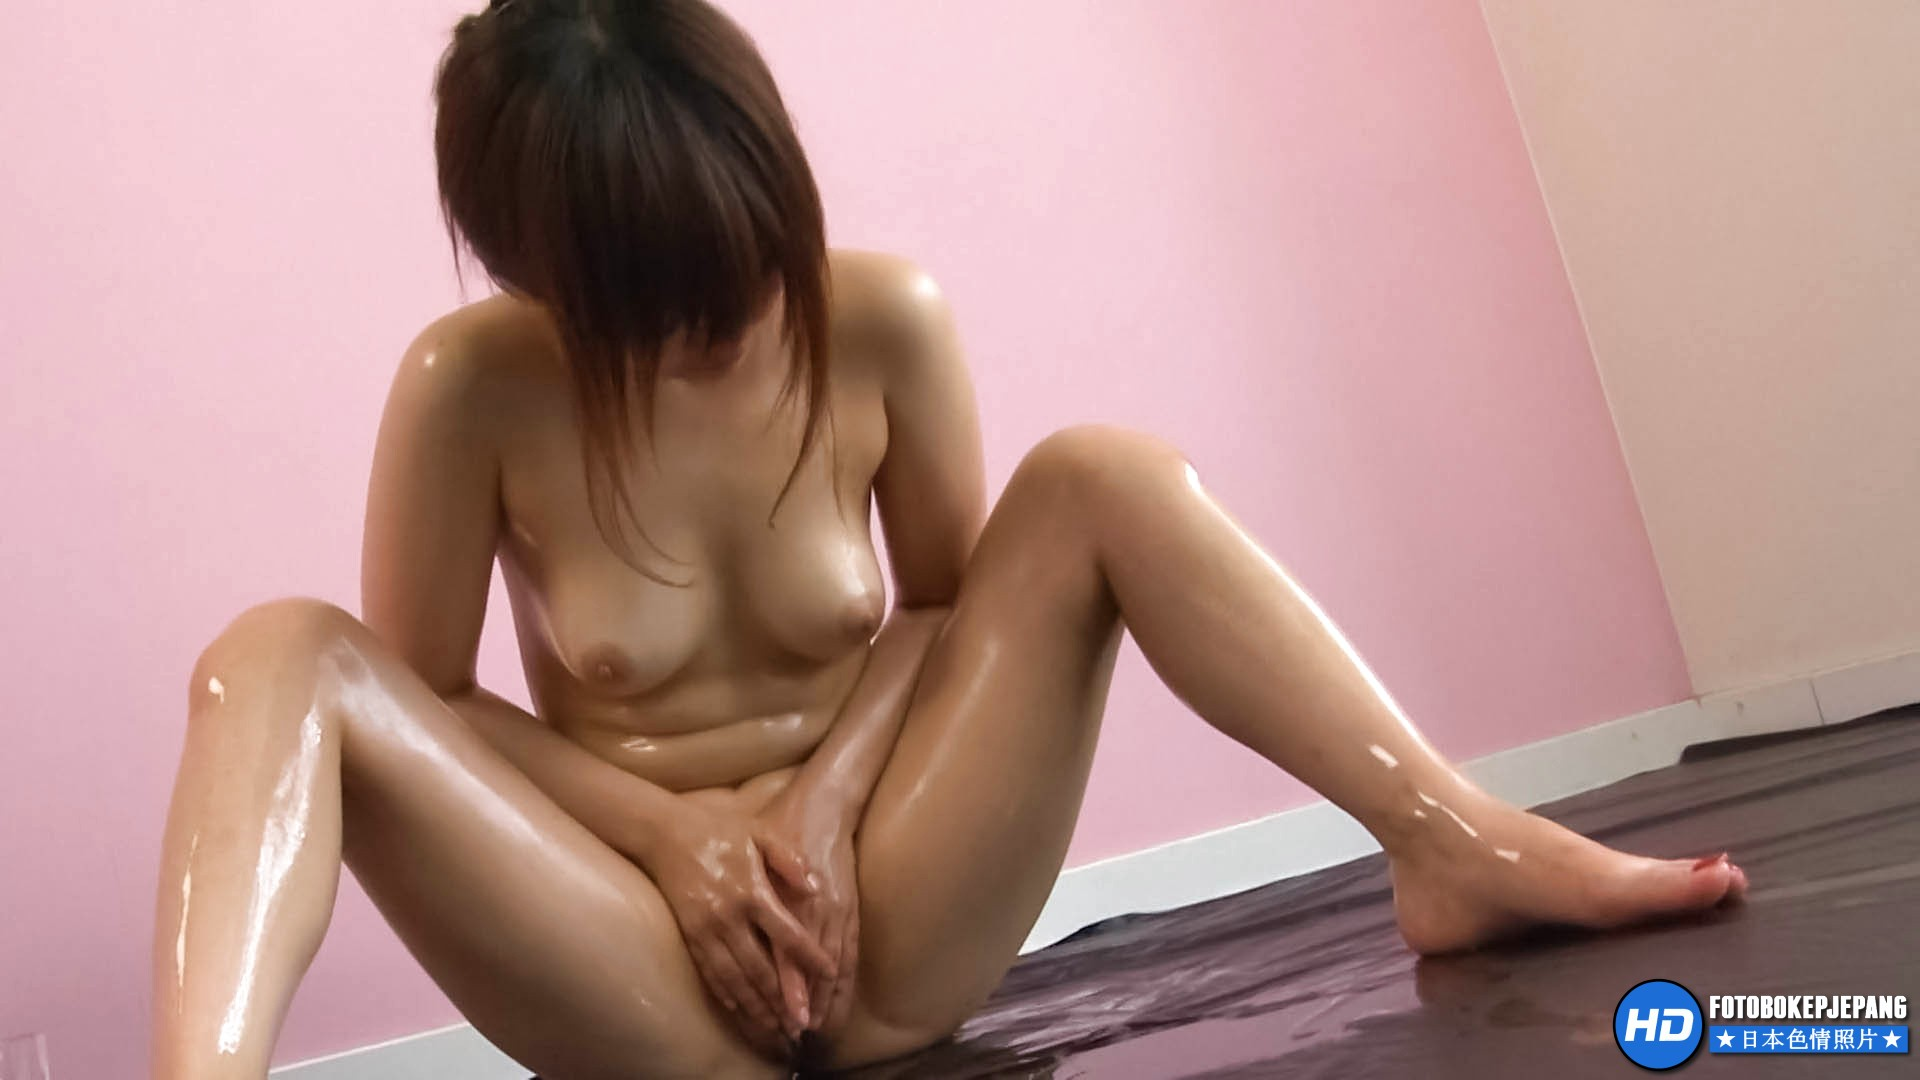 Koleksi Bokep online Asian Sex After Oil Massage 2019 terbaru